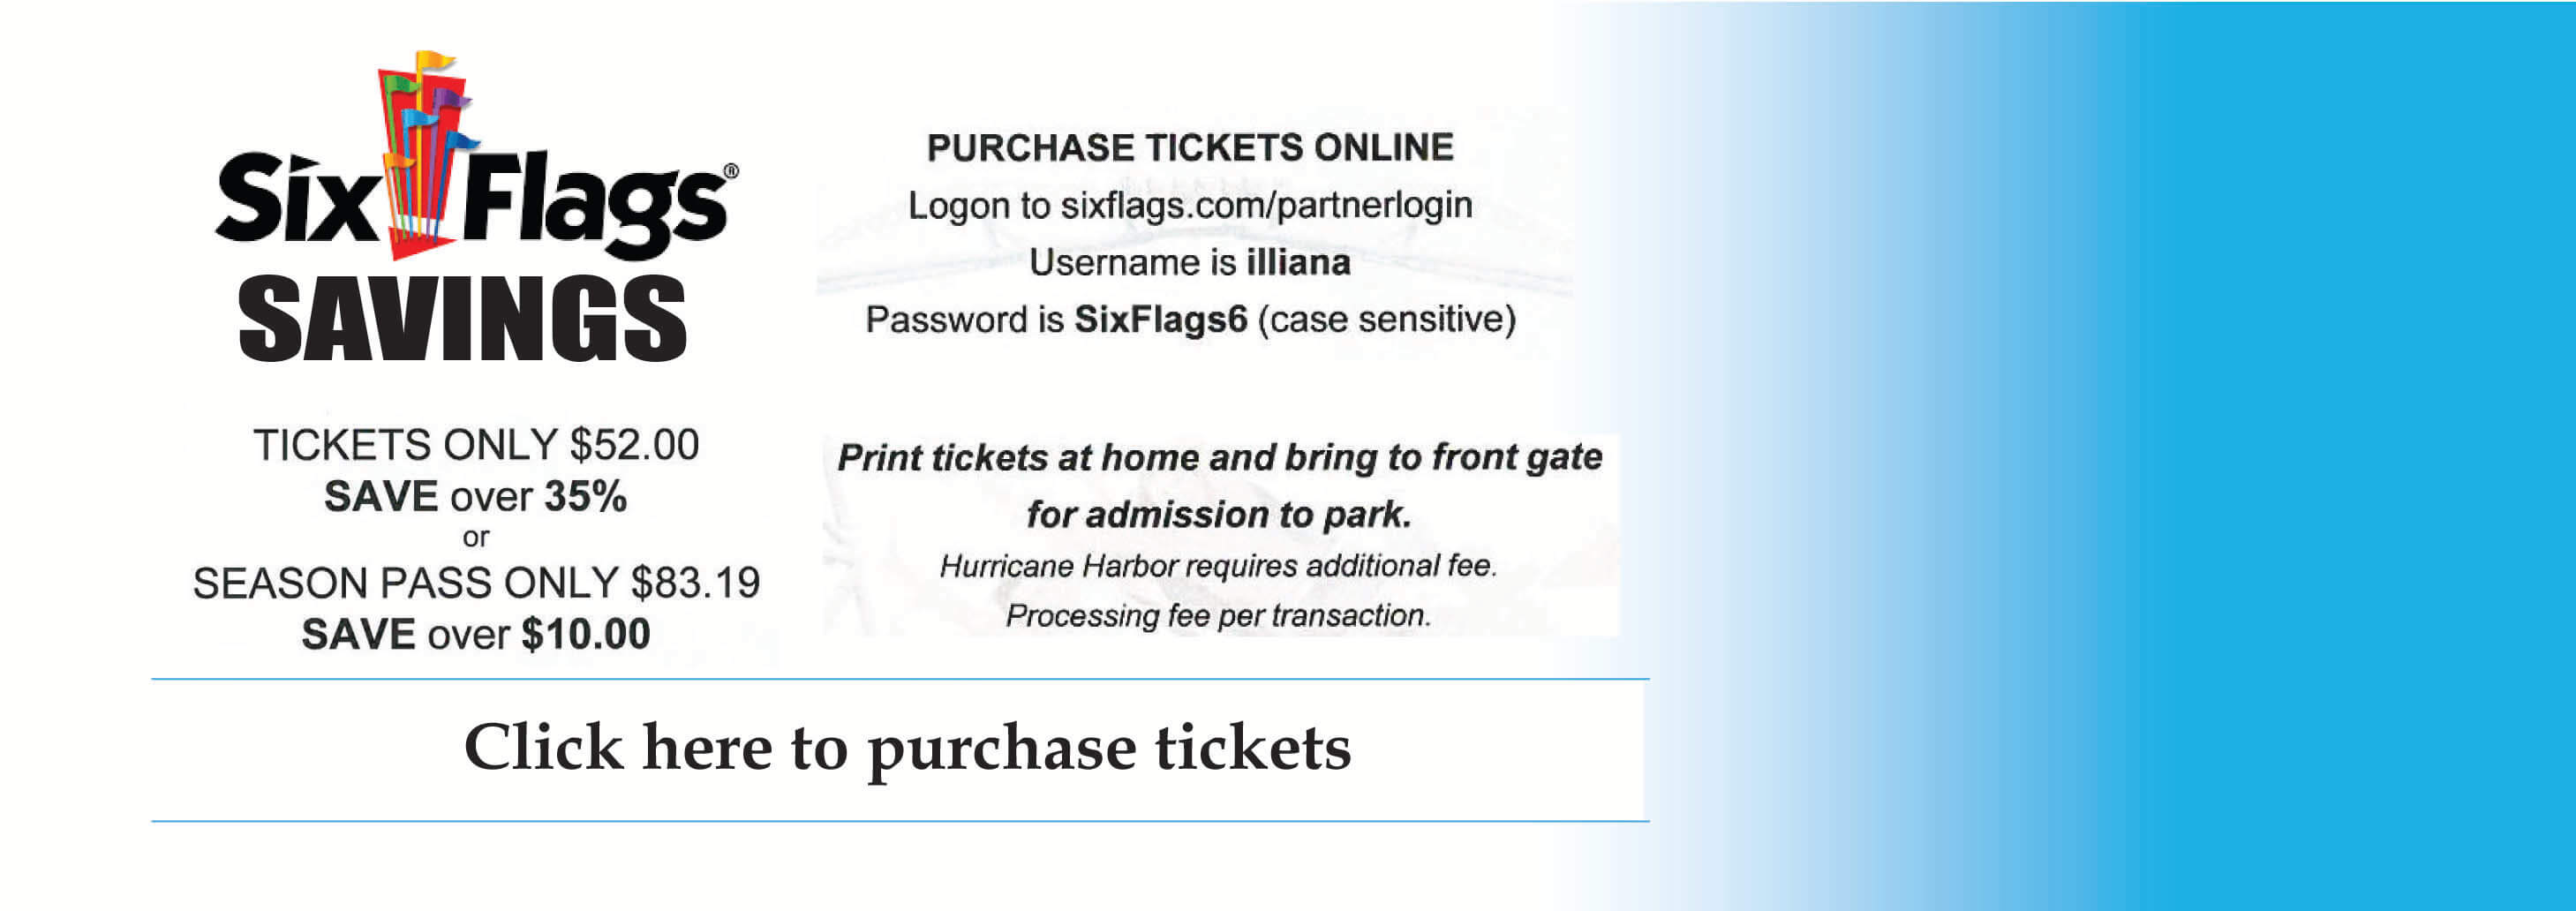 Six Flags Savings. Tickets $52.00, save over 35%. Season Pass only $83.19, save over $10.00. Purchase tickets online.